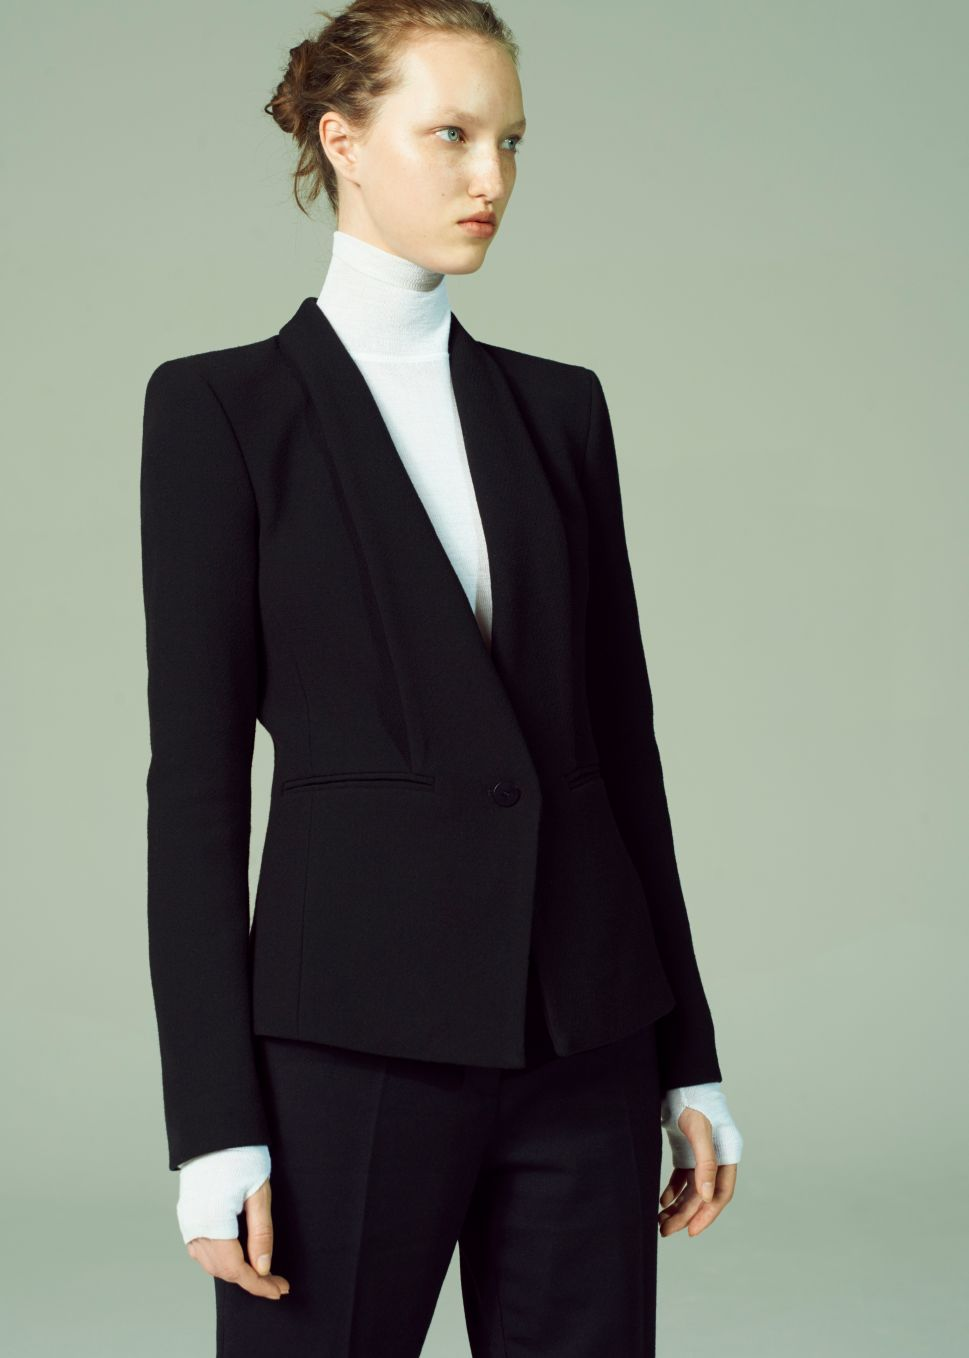 Dion Lee Launched a Standalone Tailoring Collection With SUIT